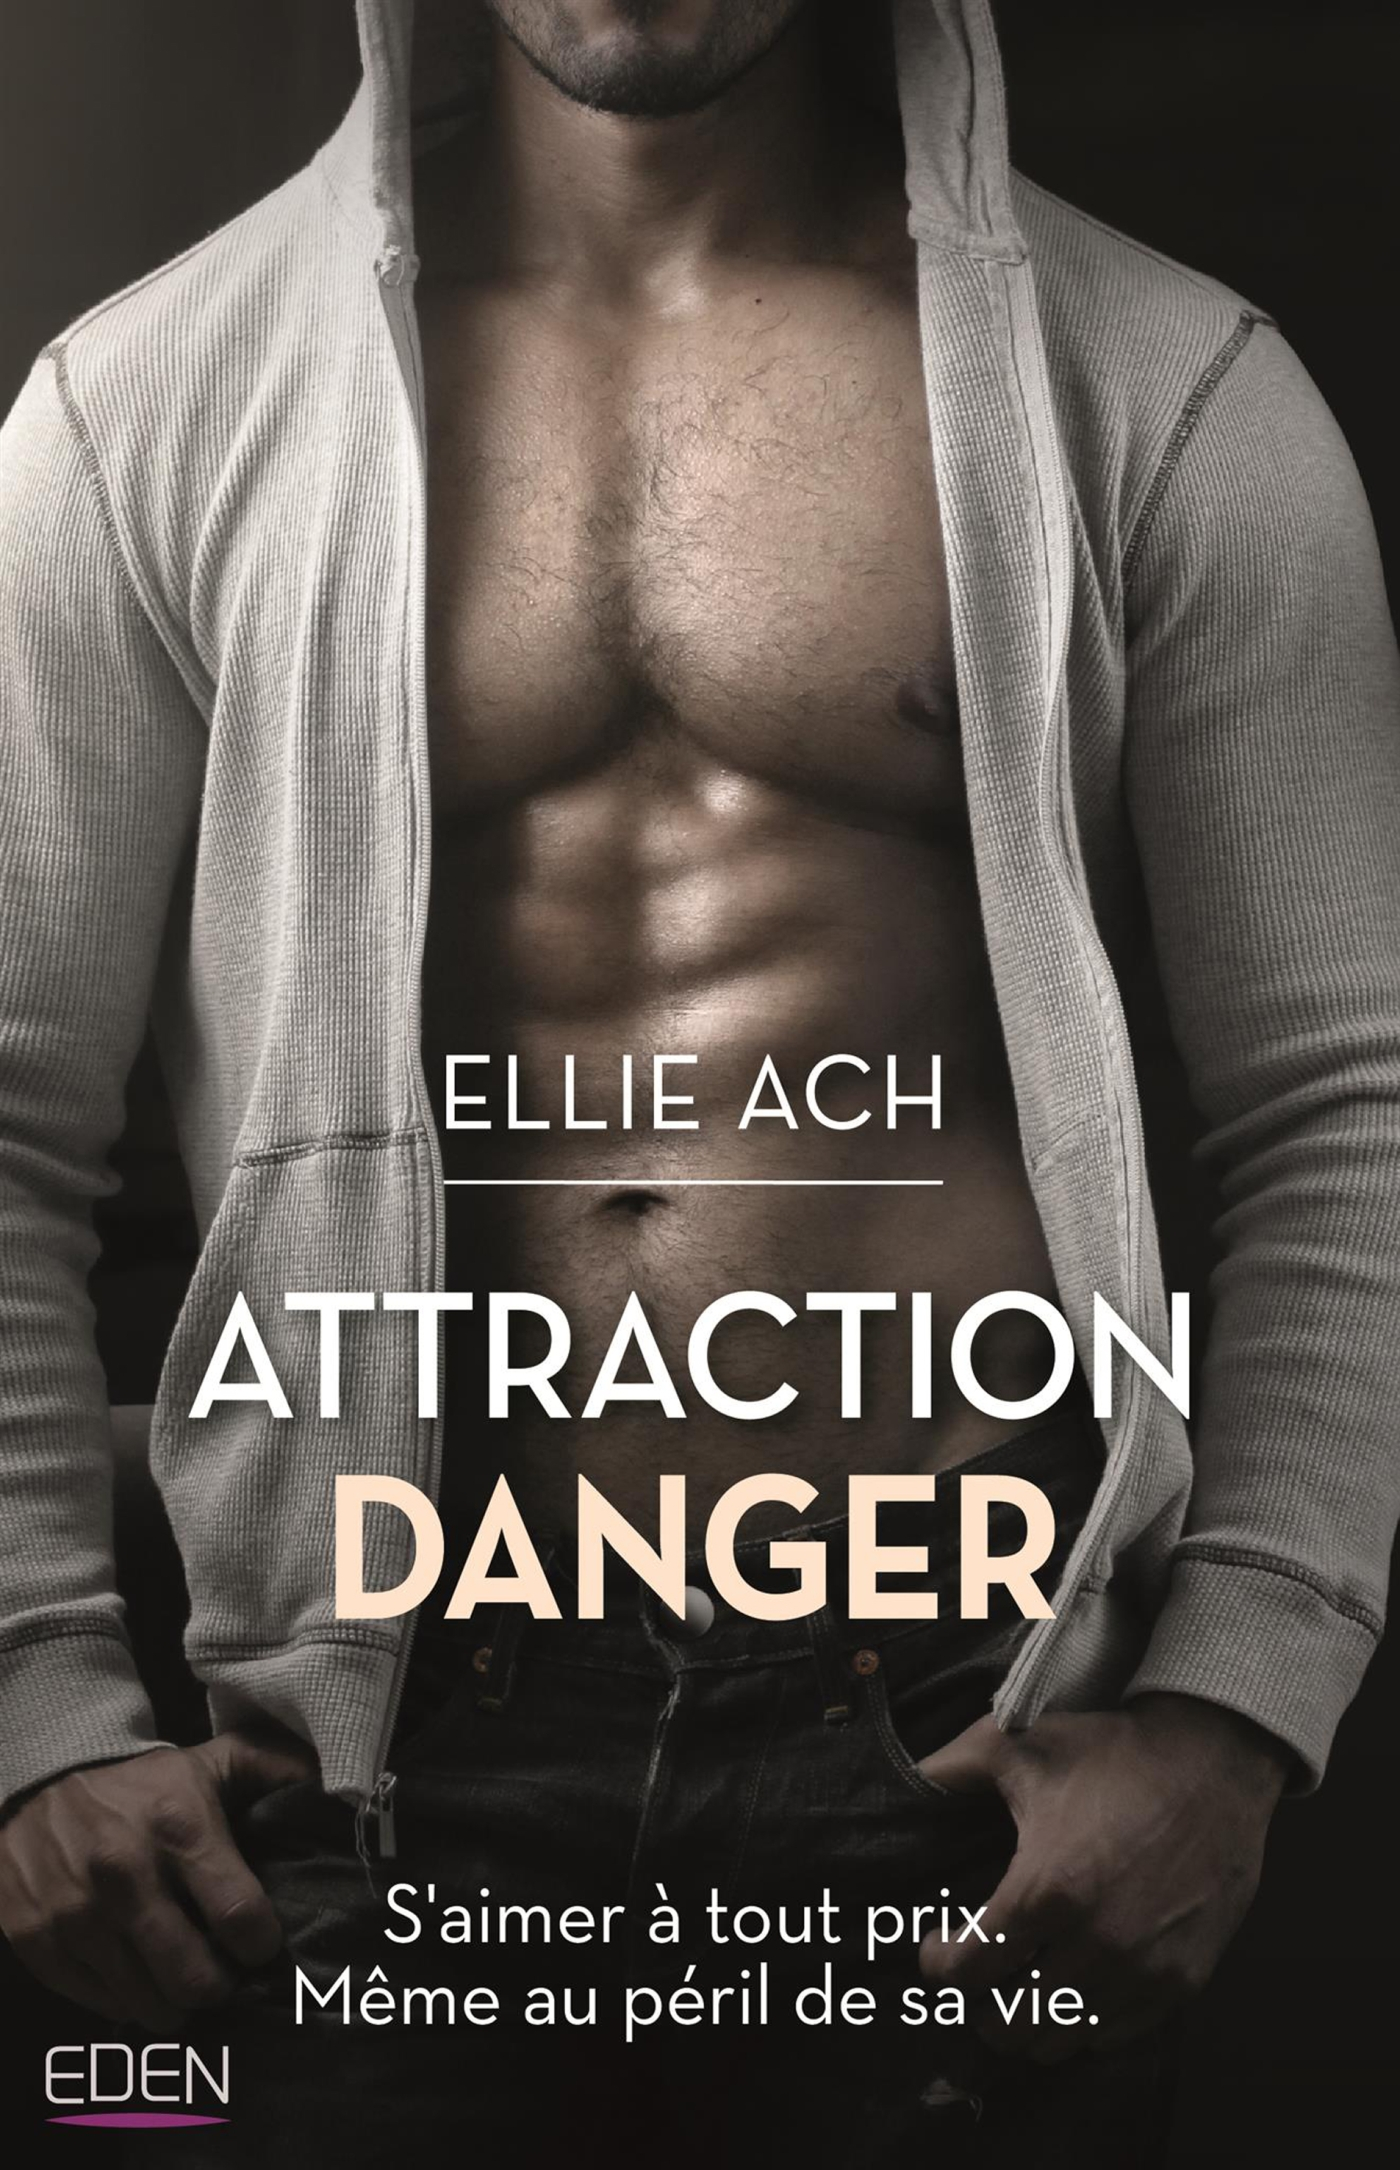 Attraction danger